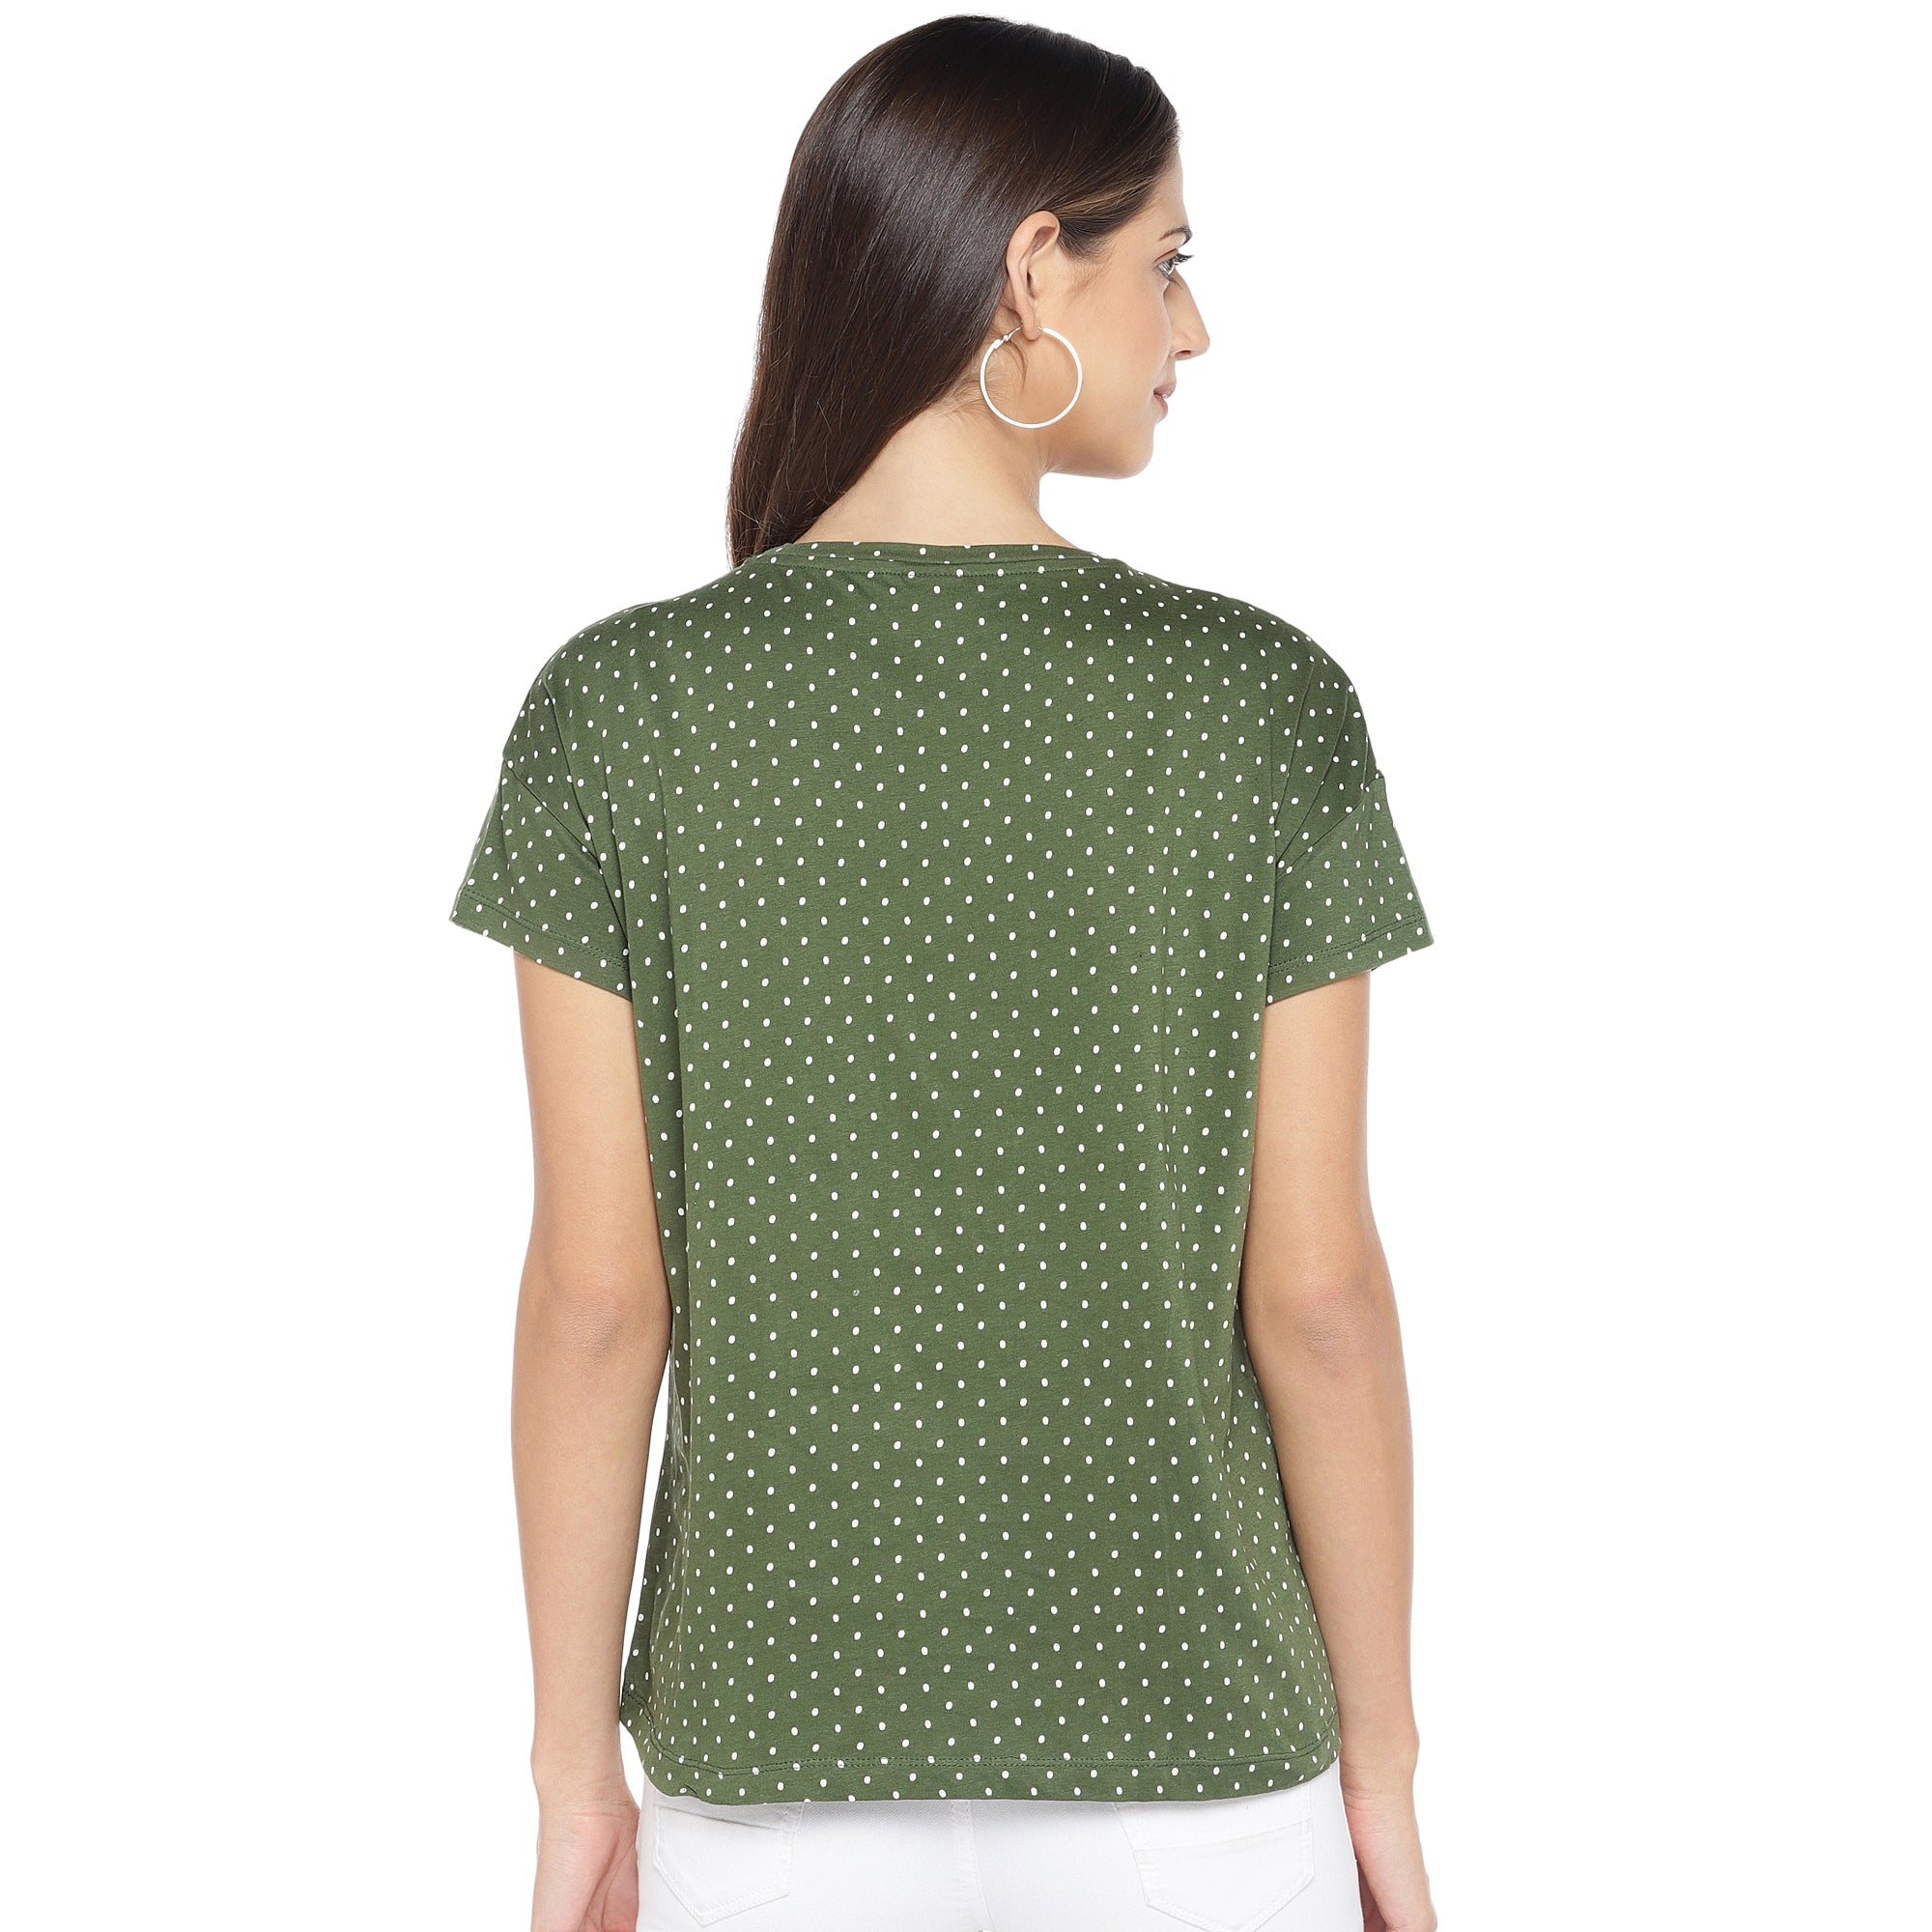 Olive Green & White Printed Round Neck T-shirt-3